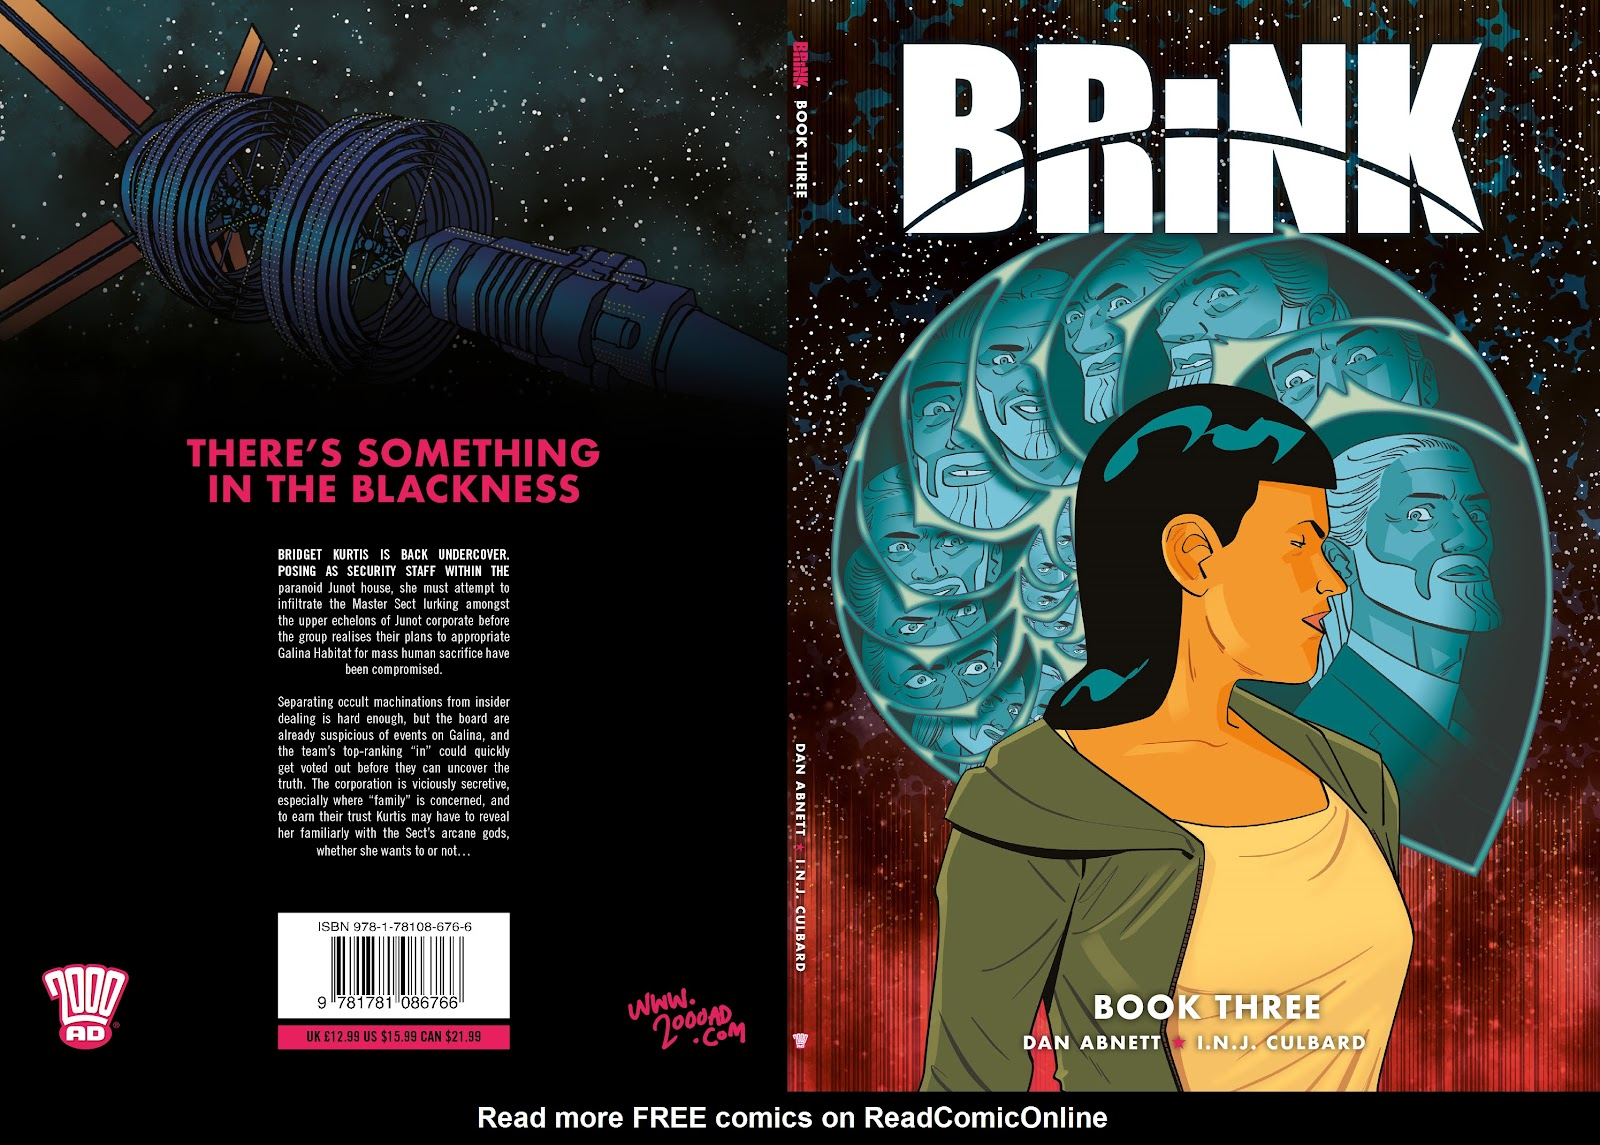 Read online Brink comic -  Issue # TPB 3 - 1